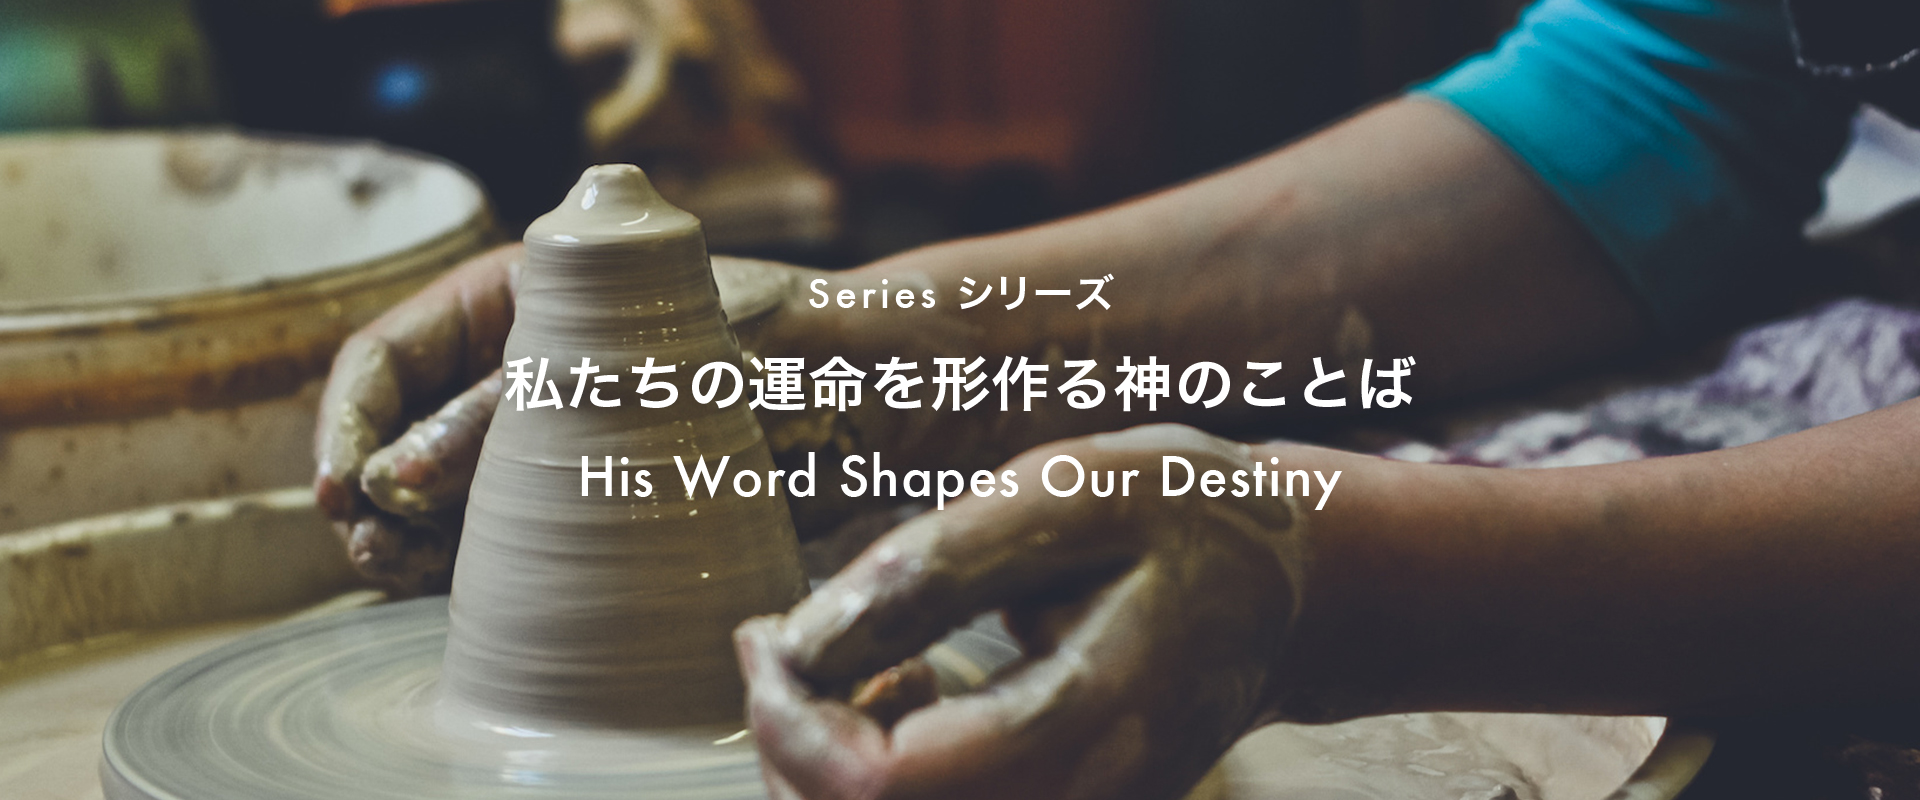 Message Series - His Word Shapes Our Destiny